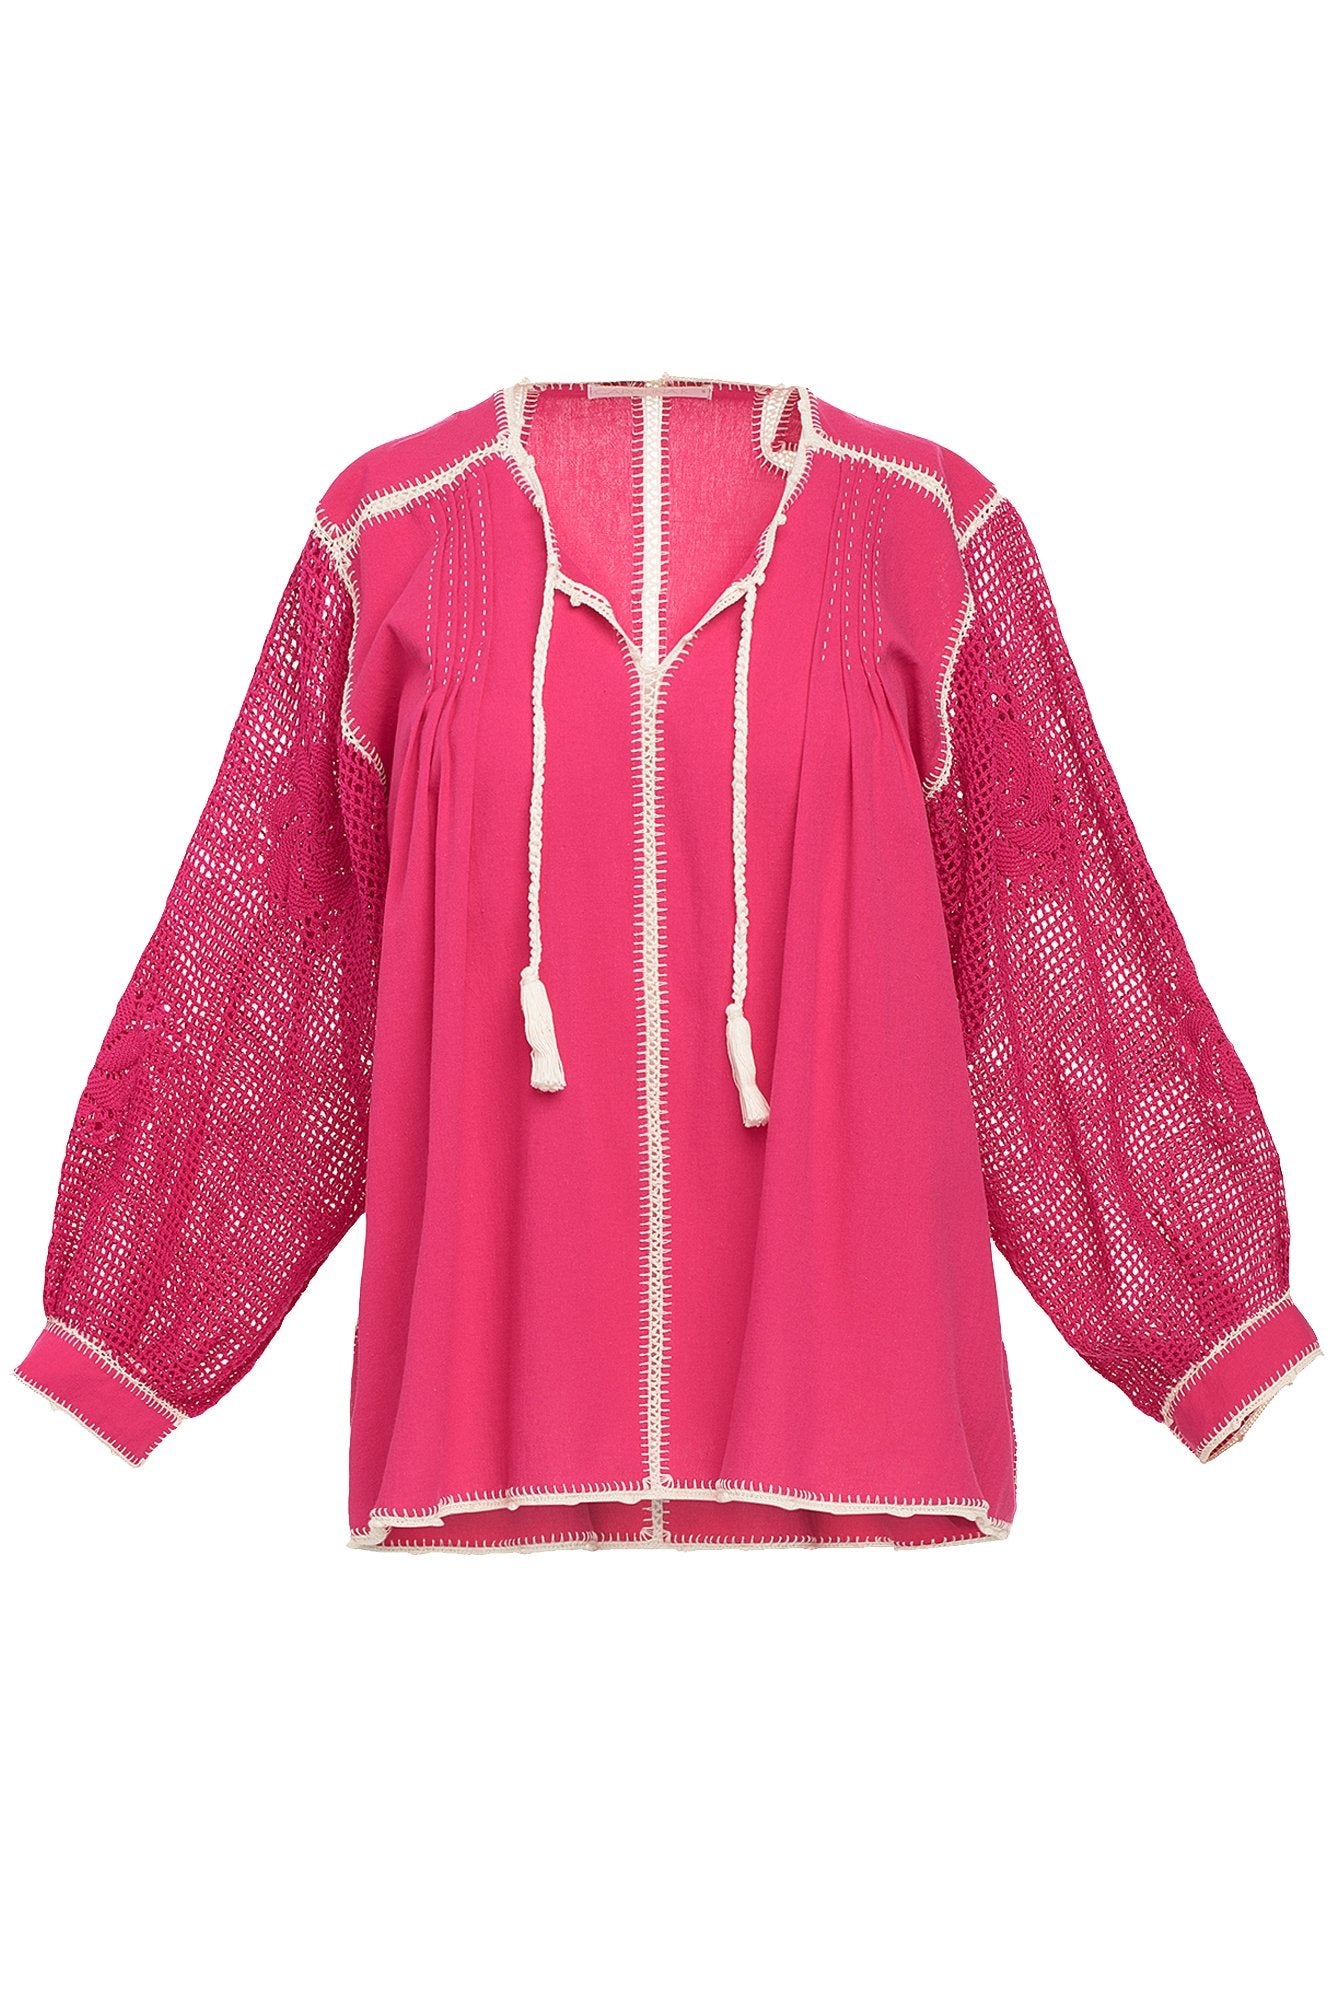 Carolina K San Juan Blouse in Fuchsia